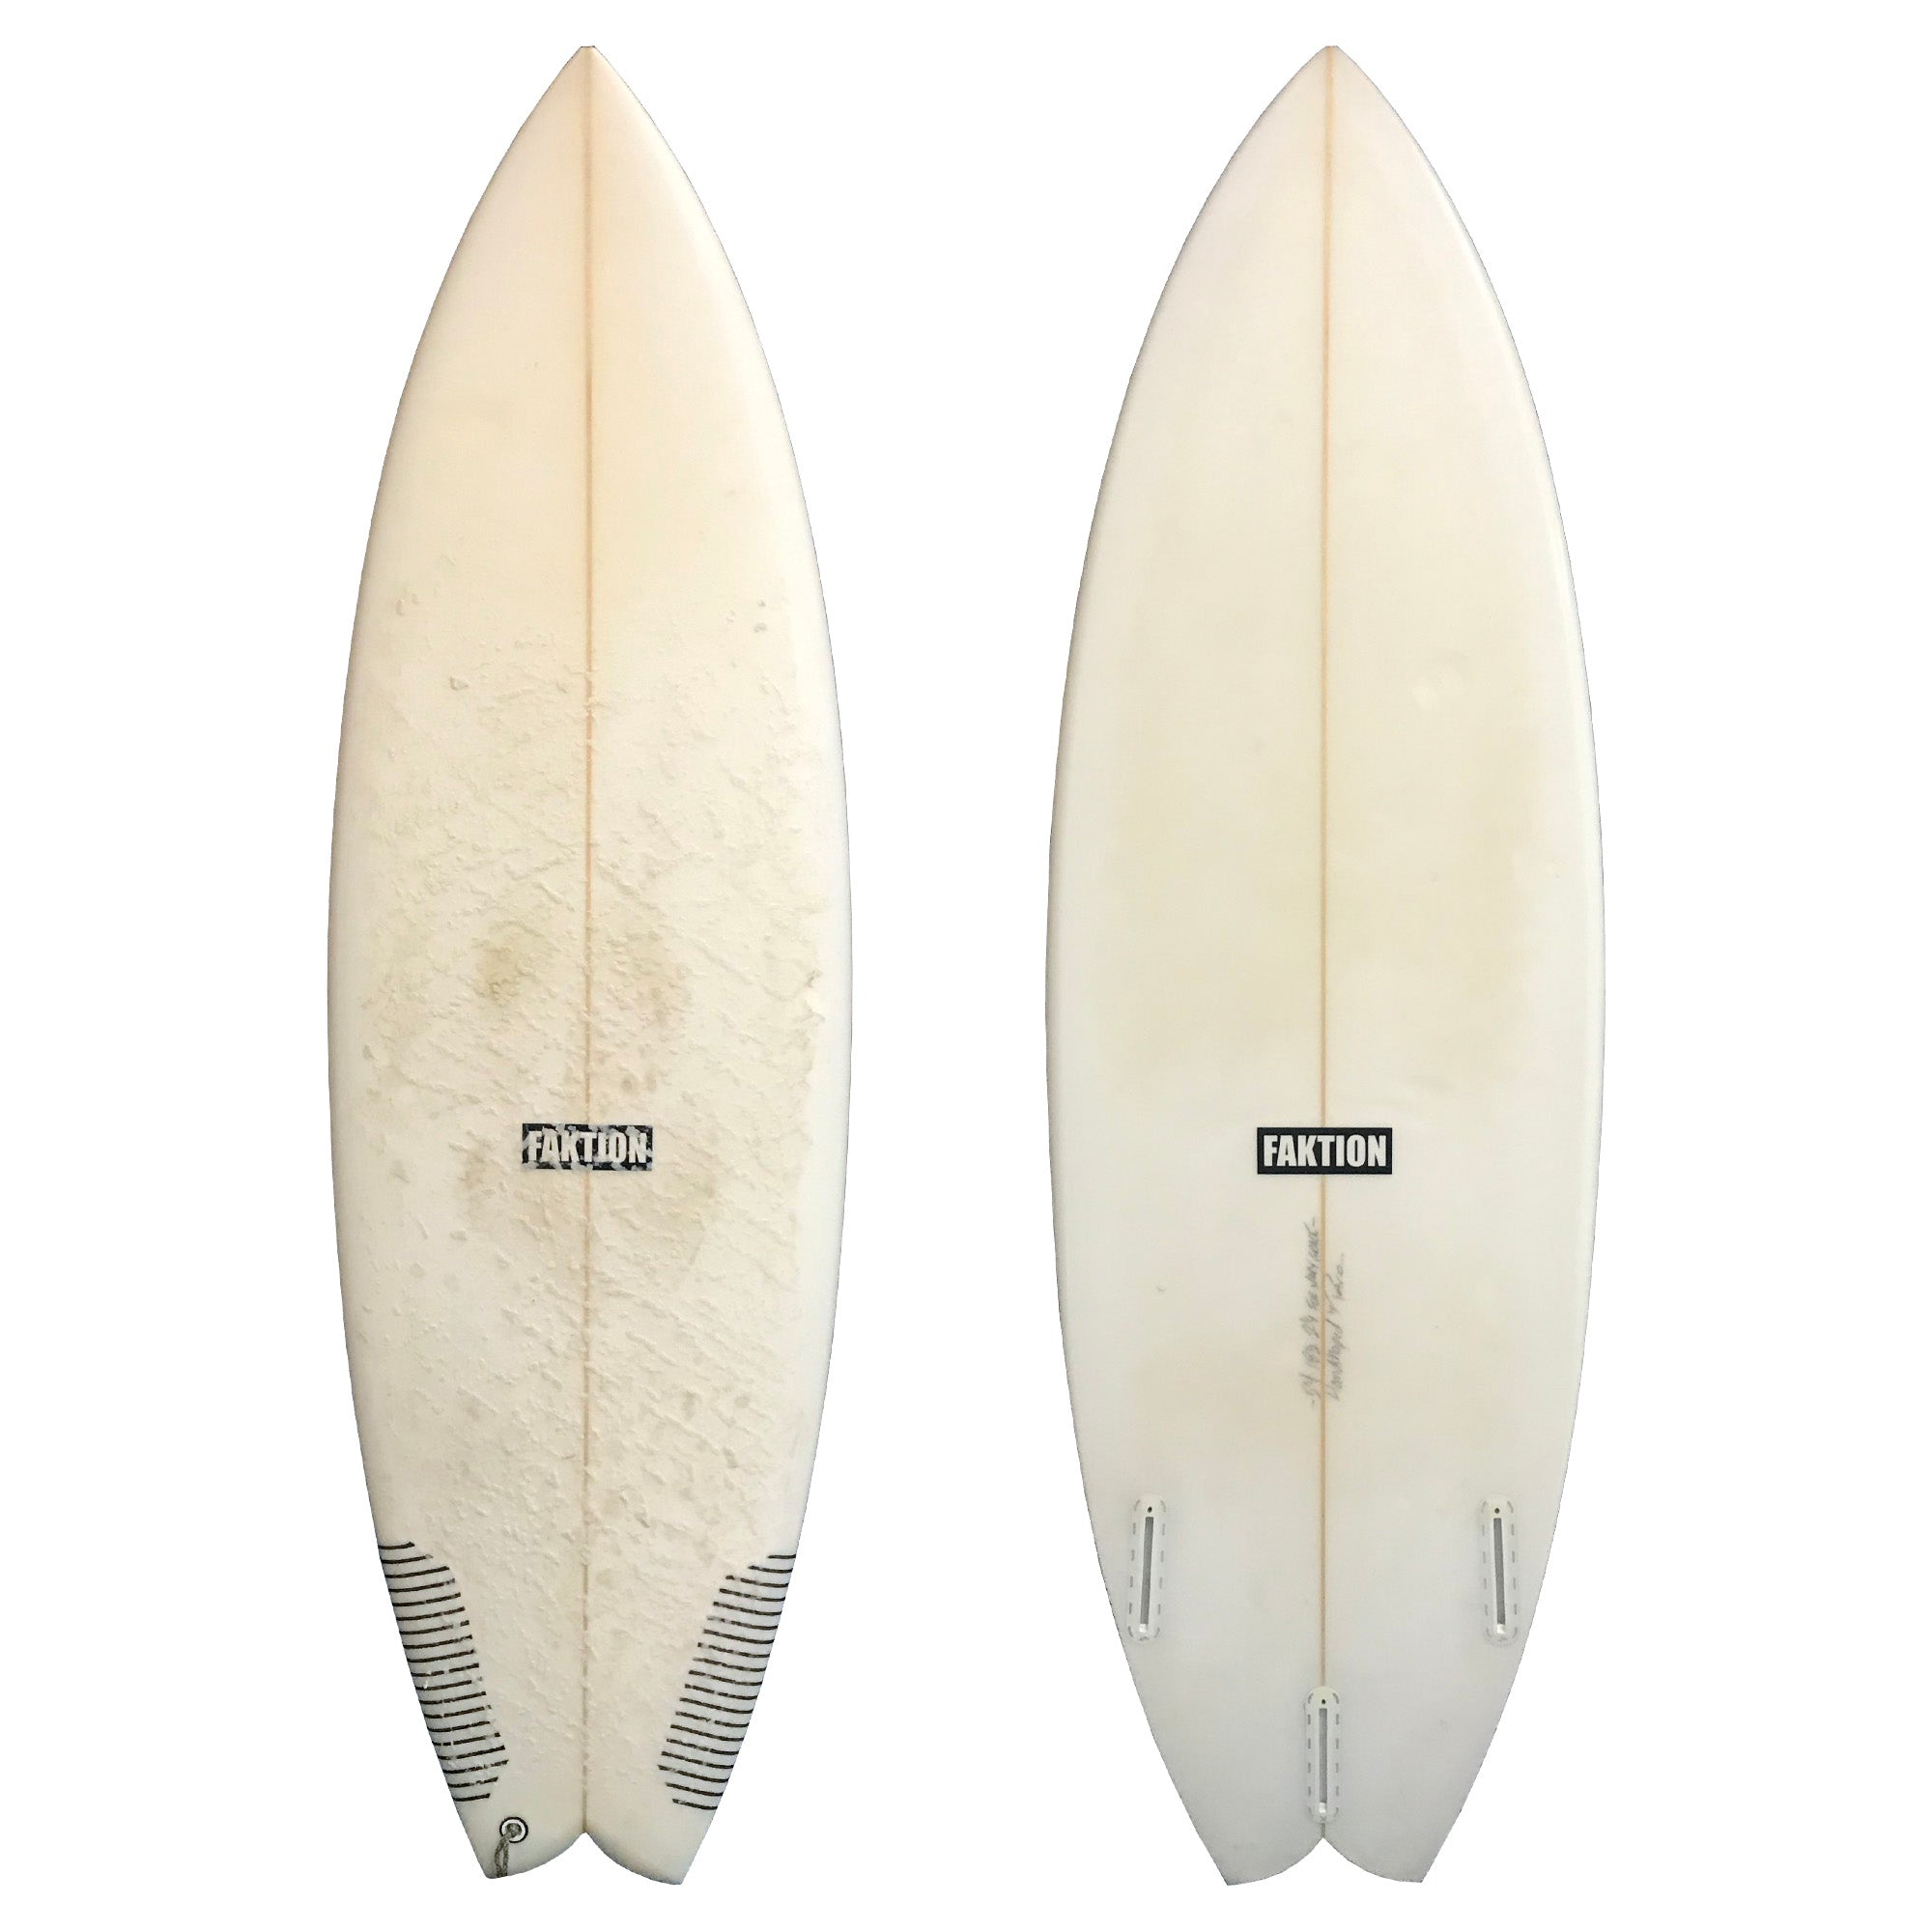 Faktion 5'4 Used Surfboard